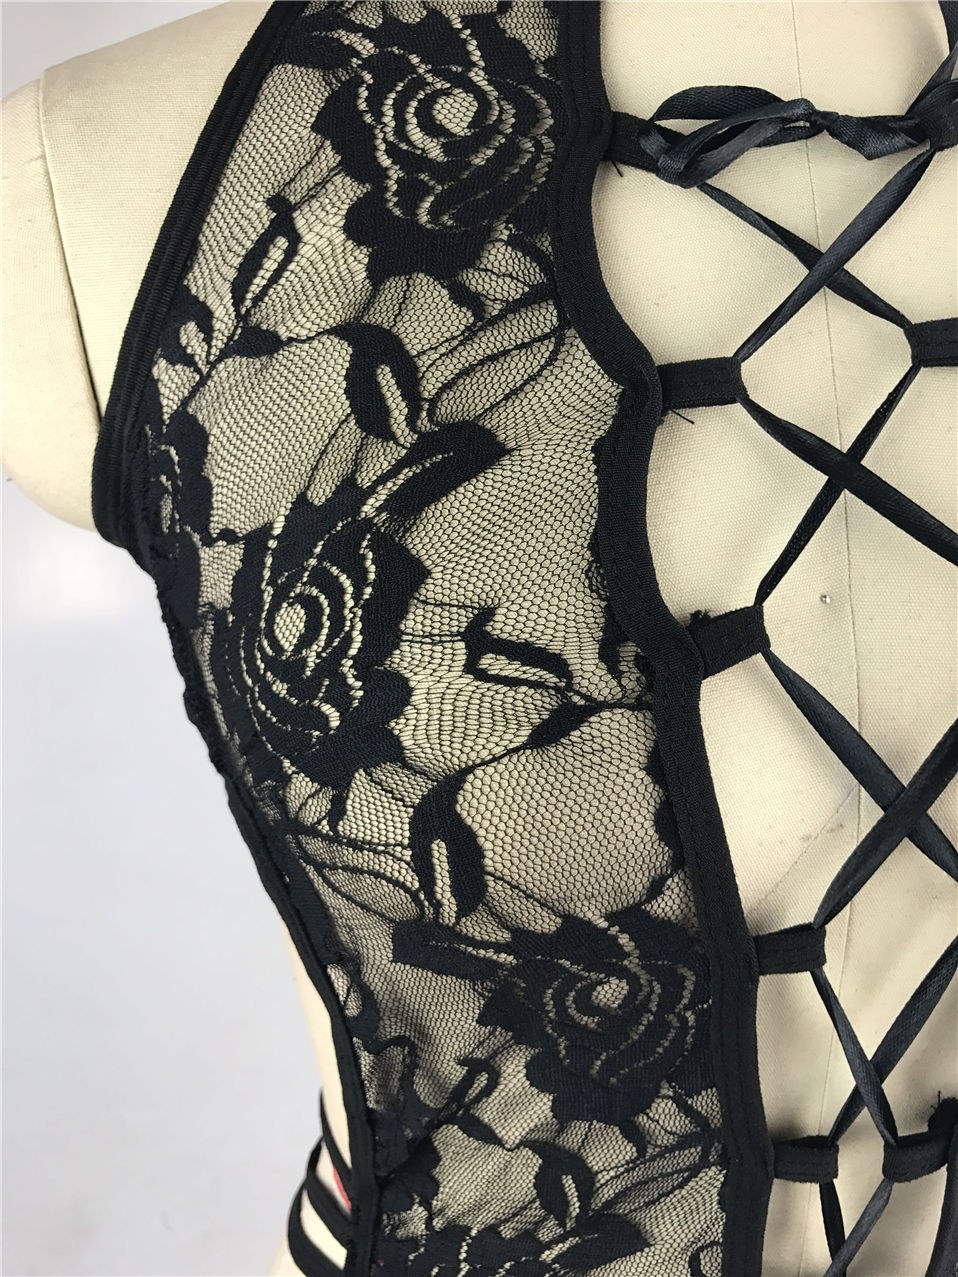 Hot Black Lace Cosplay Cat Uniform - Sexy Costumes